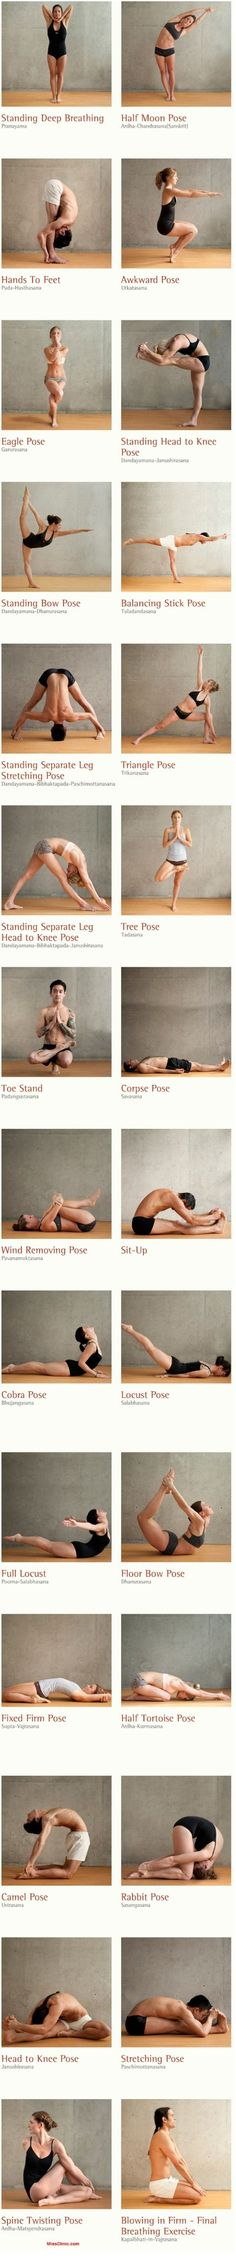 26 Healthy Yoga Postures. Wow, this is great